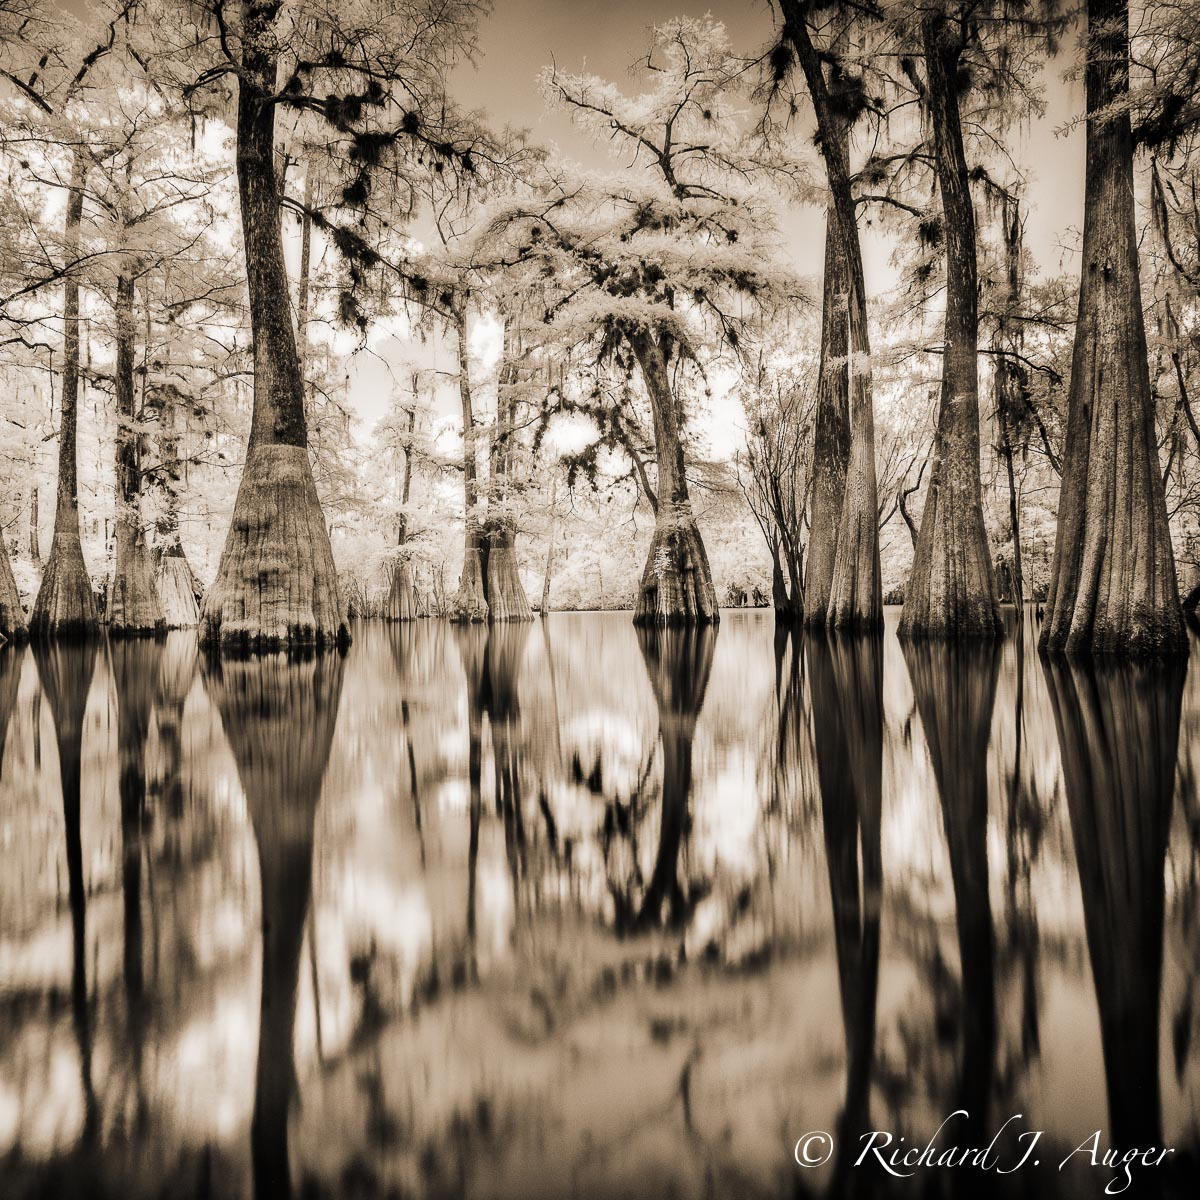 Suwannee River, Florida, Cypress, Swamp, Reflections, Tall, Landscape, water, photograph